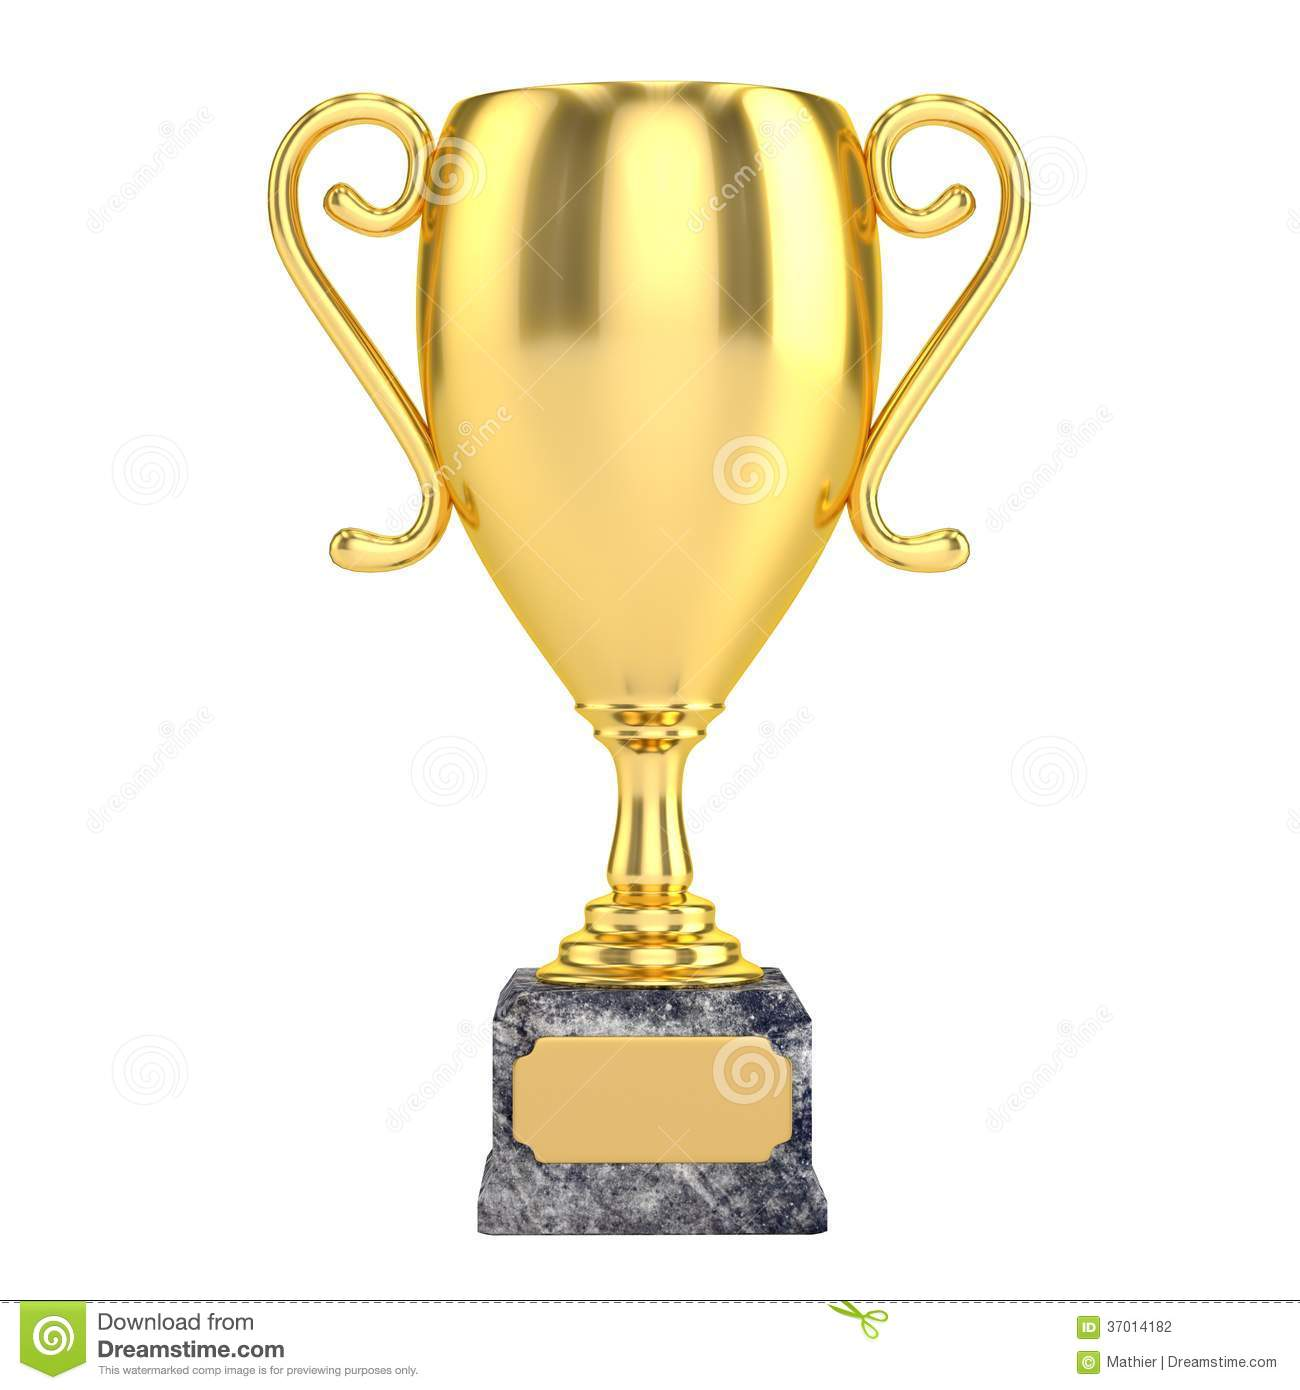 Download Gold Cup Isolated Stock Photo Illustration Of Competition